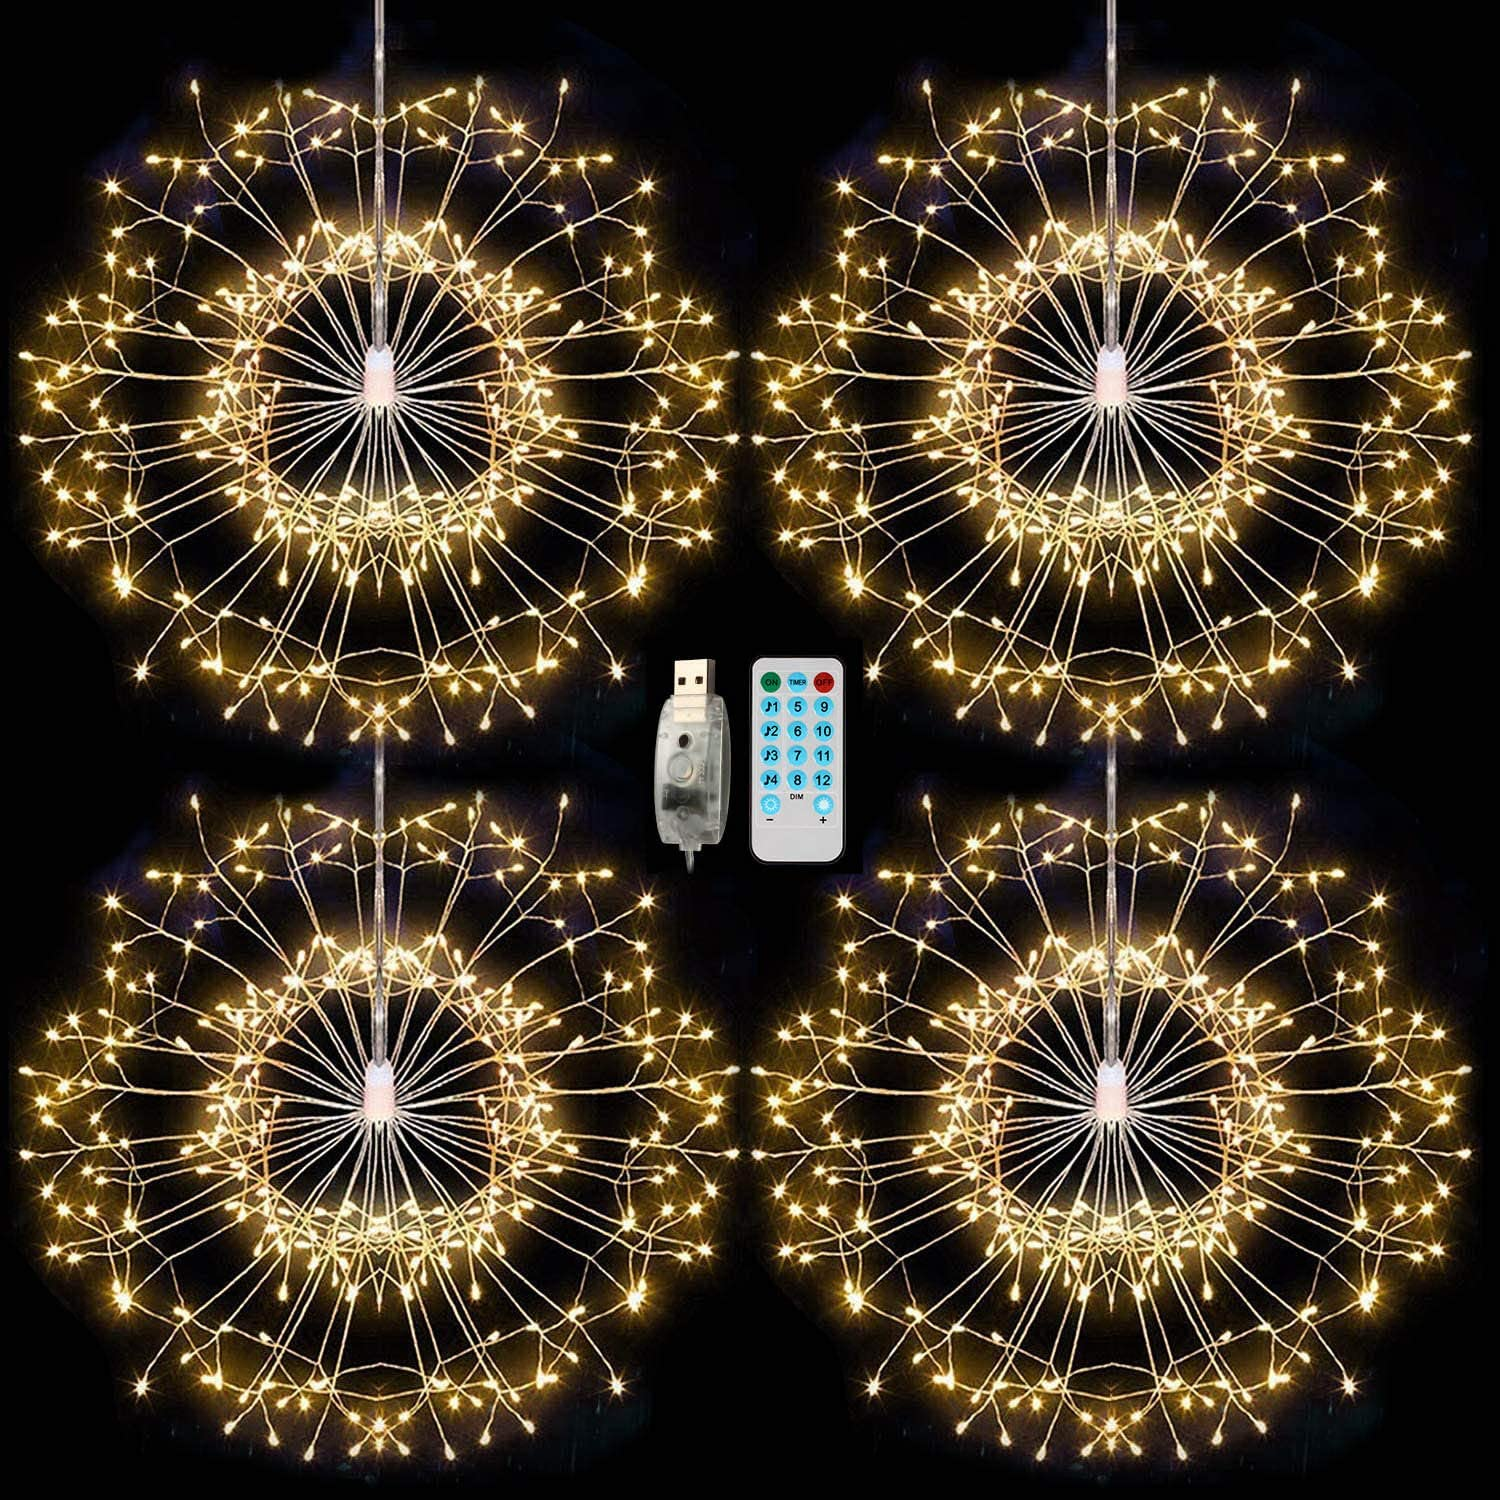 4 Pack 480 LED Fireworks Lights Curtain Fairy Lights with Remote USB Powered, Pulchram String Light Christmas Decoration,Indoor Outdoor for Garden,Wedding, Bedroom, Party,Tree Multicolor 2